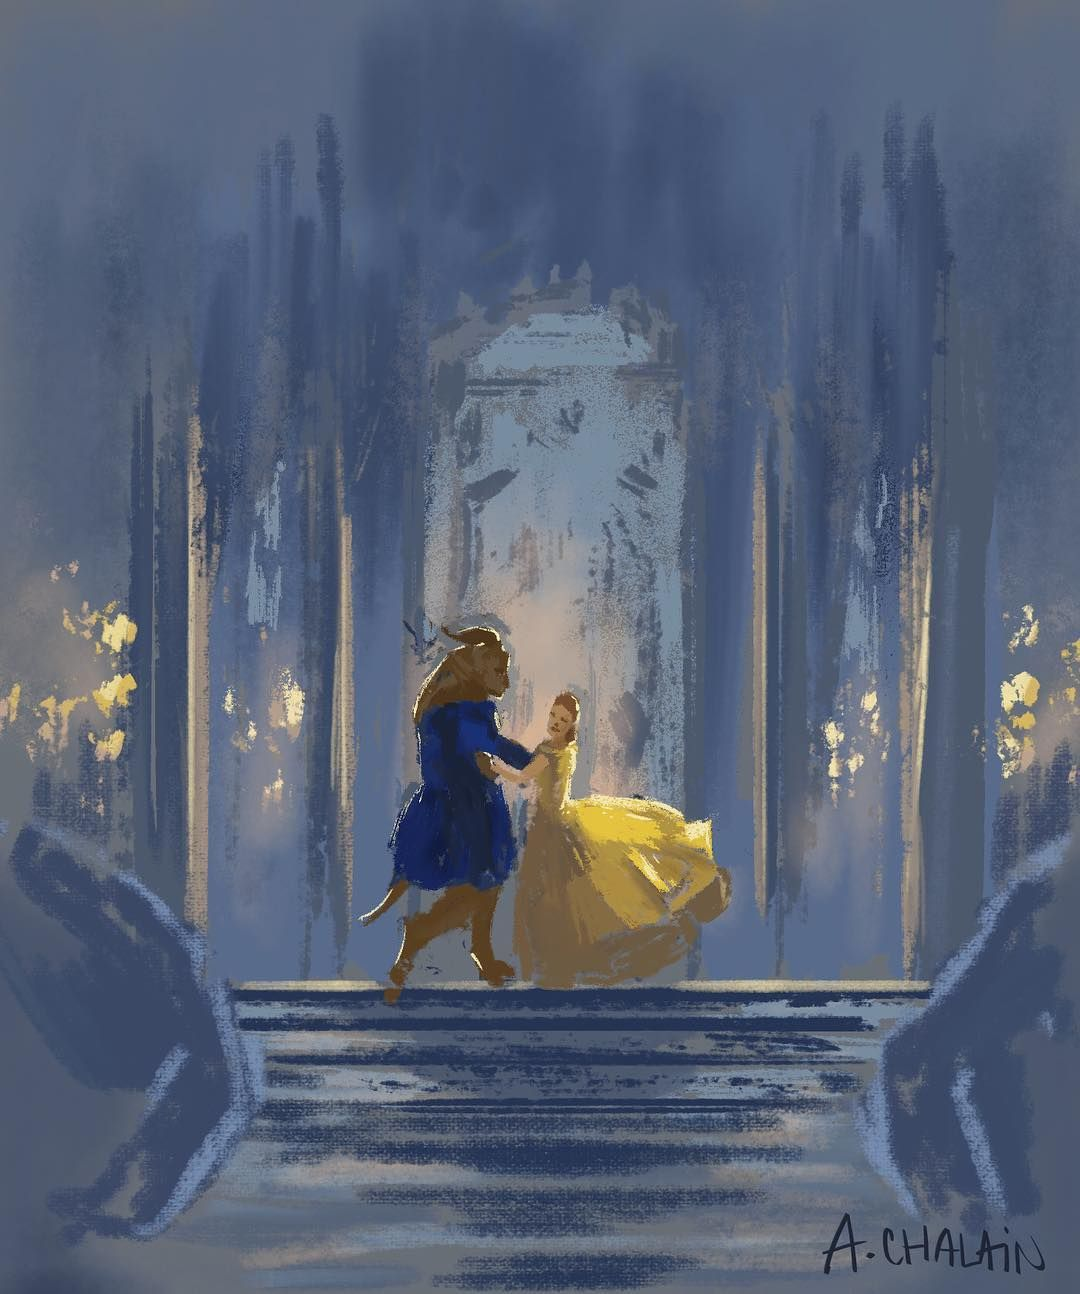 A Stunning Illustration For Beauty And The Beast Dancing Scene By